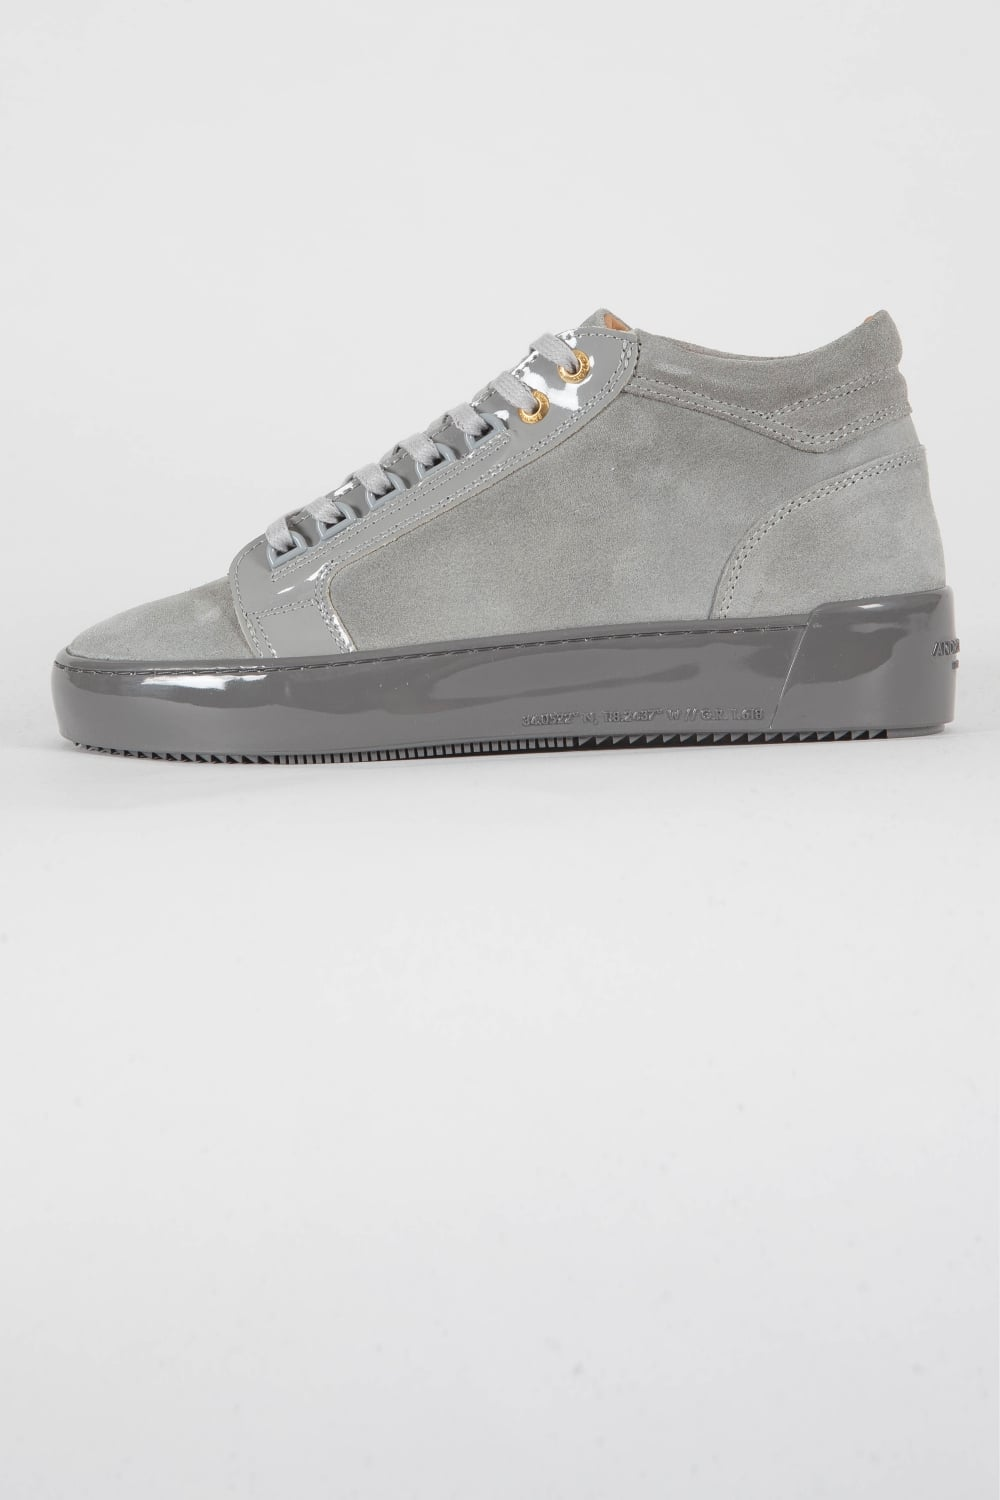 Android Homme Propulsion Mid Suede Trainers Grey Intro